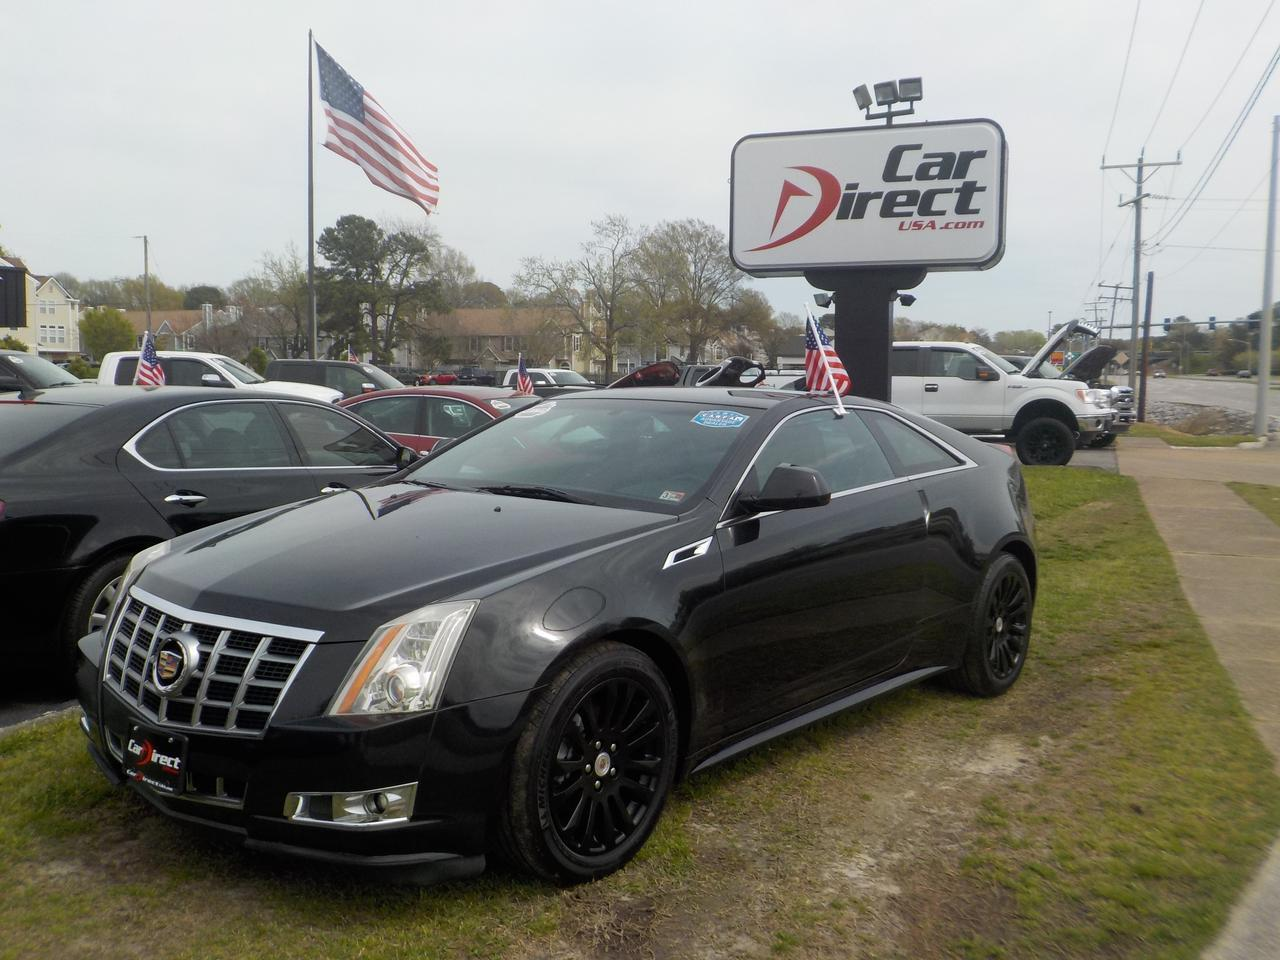 2012 CADILLAC CTS 4 PERFORMANCE AWD COUPE, BACKUP CAMERA, PARKING SENSORS, REMOTE START, ONSTAR, BLUETOOTH, HEATED SEATS Virginia Beach VA